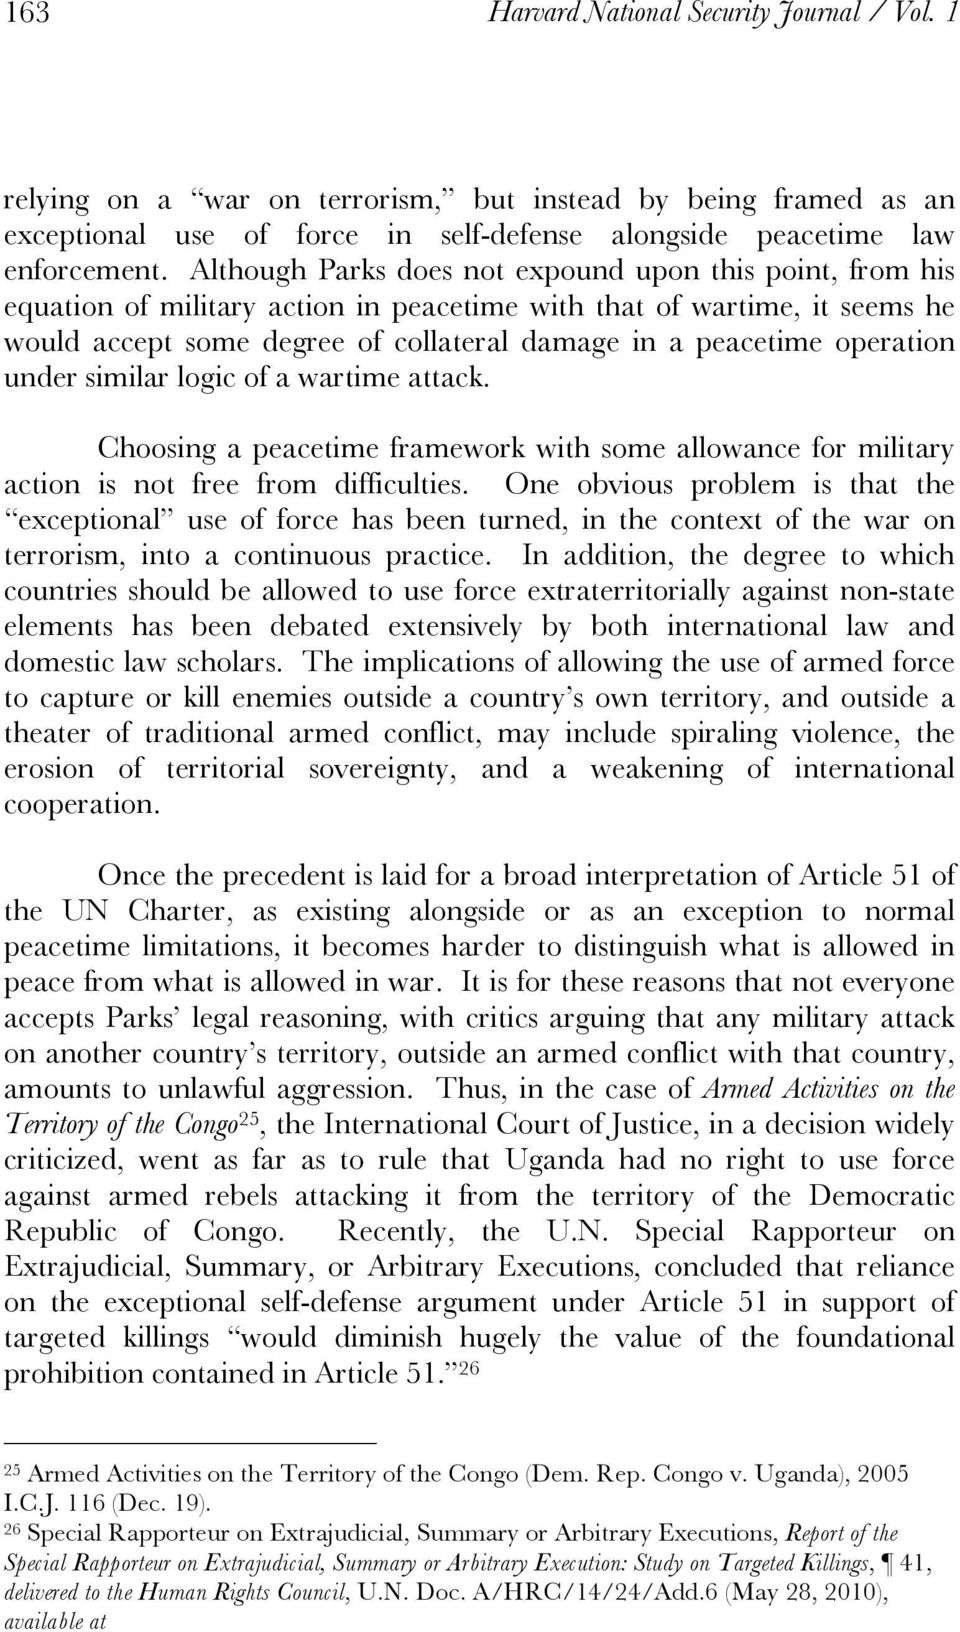 operation under similar logic of a wartime attack. Choosing a peacetime framework with some allowance for military action is not free from difficulties.